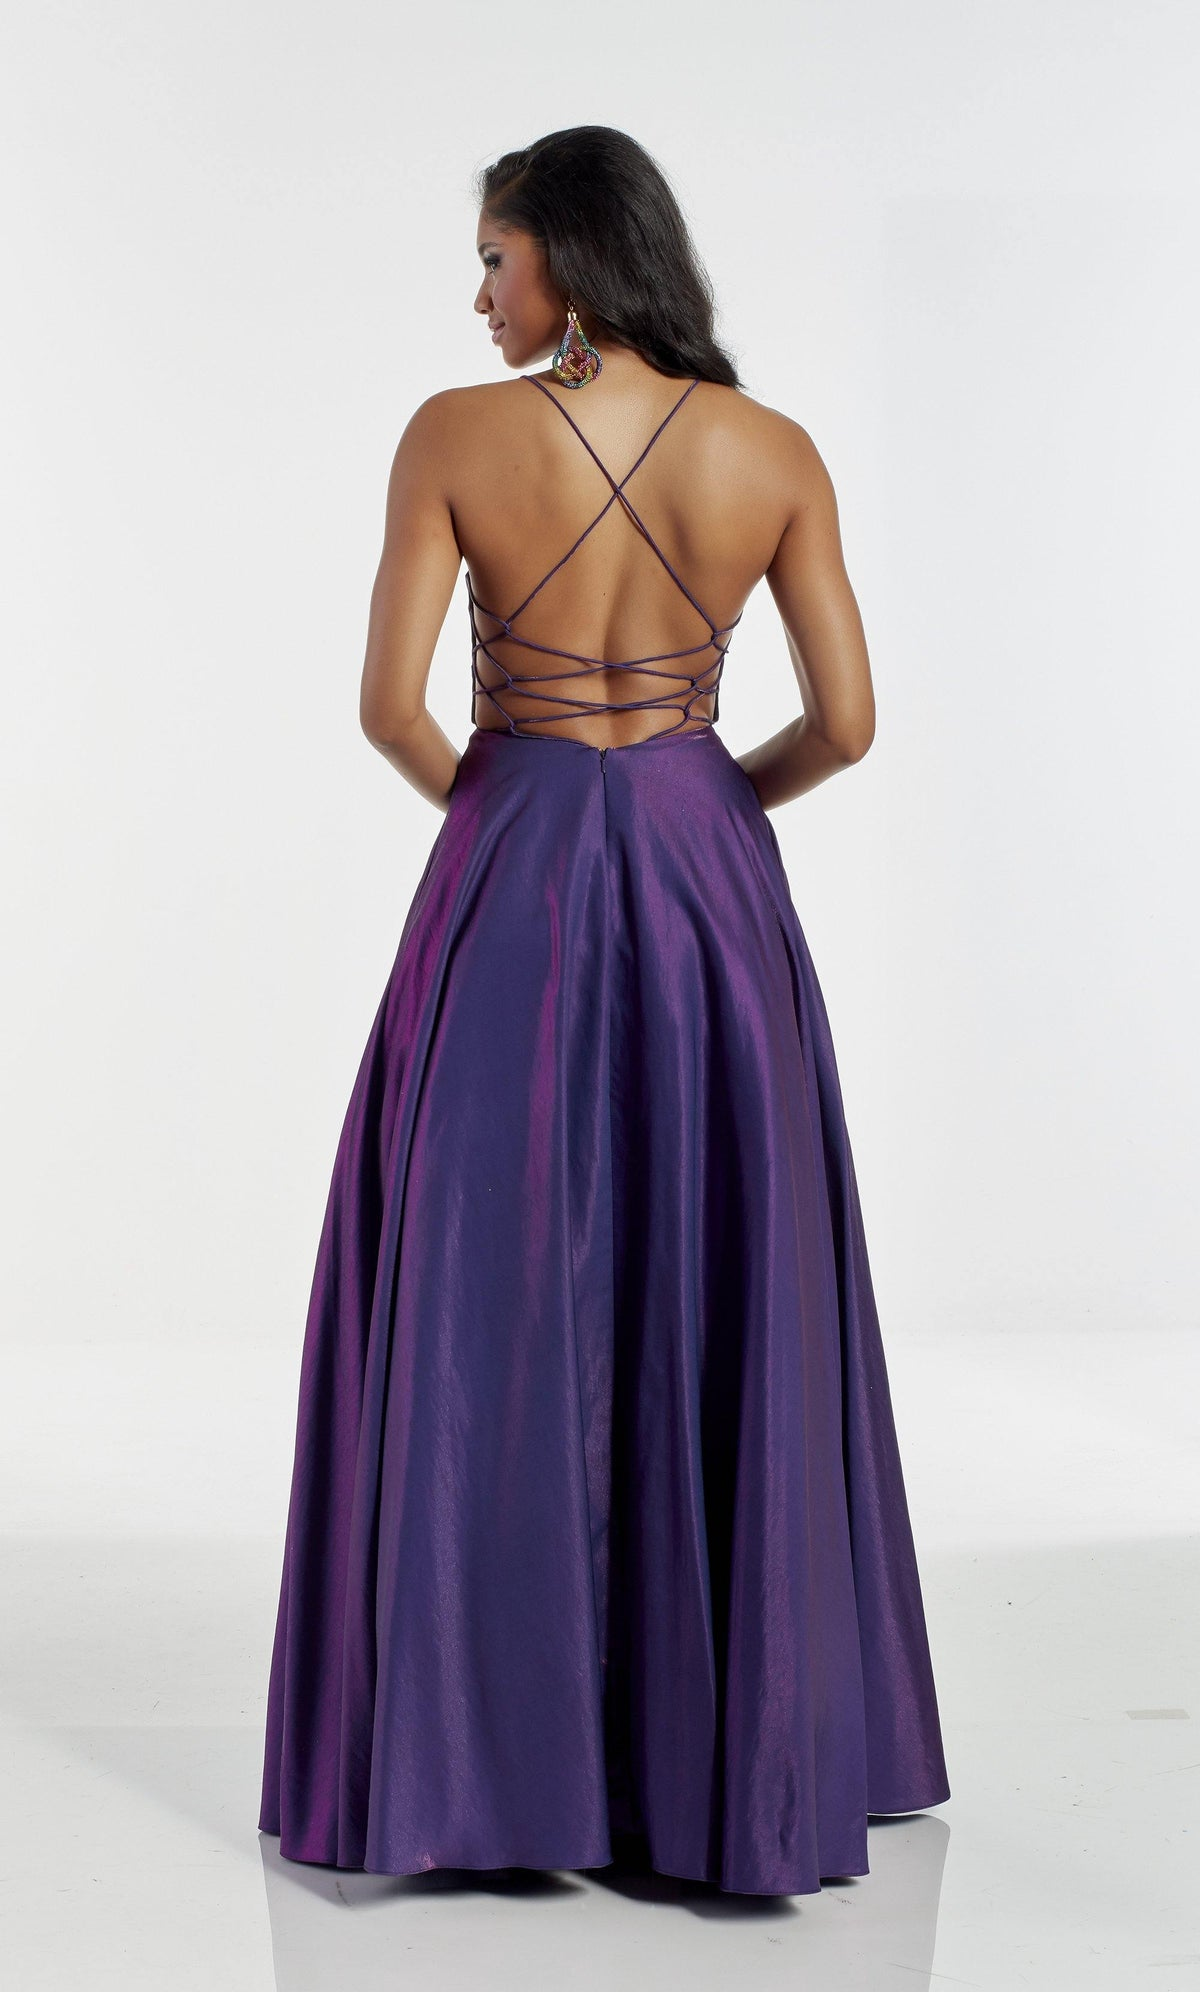 Bright purple A line prom dress with a strappy back